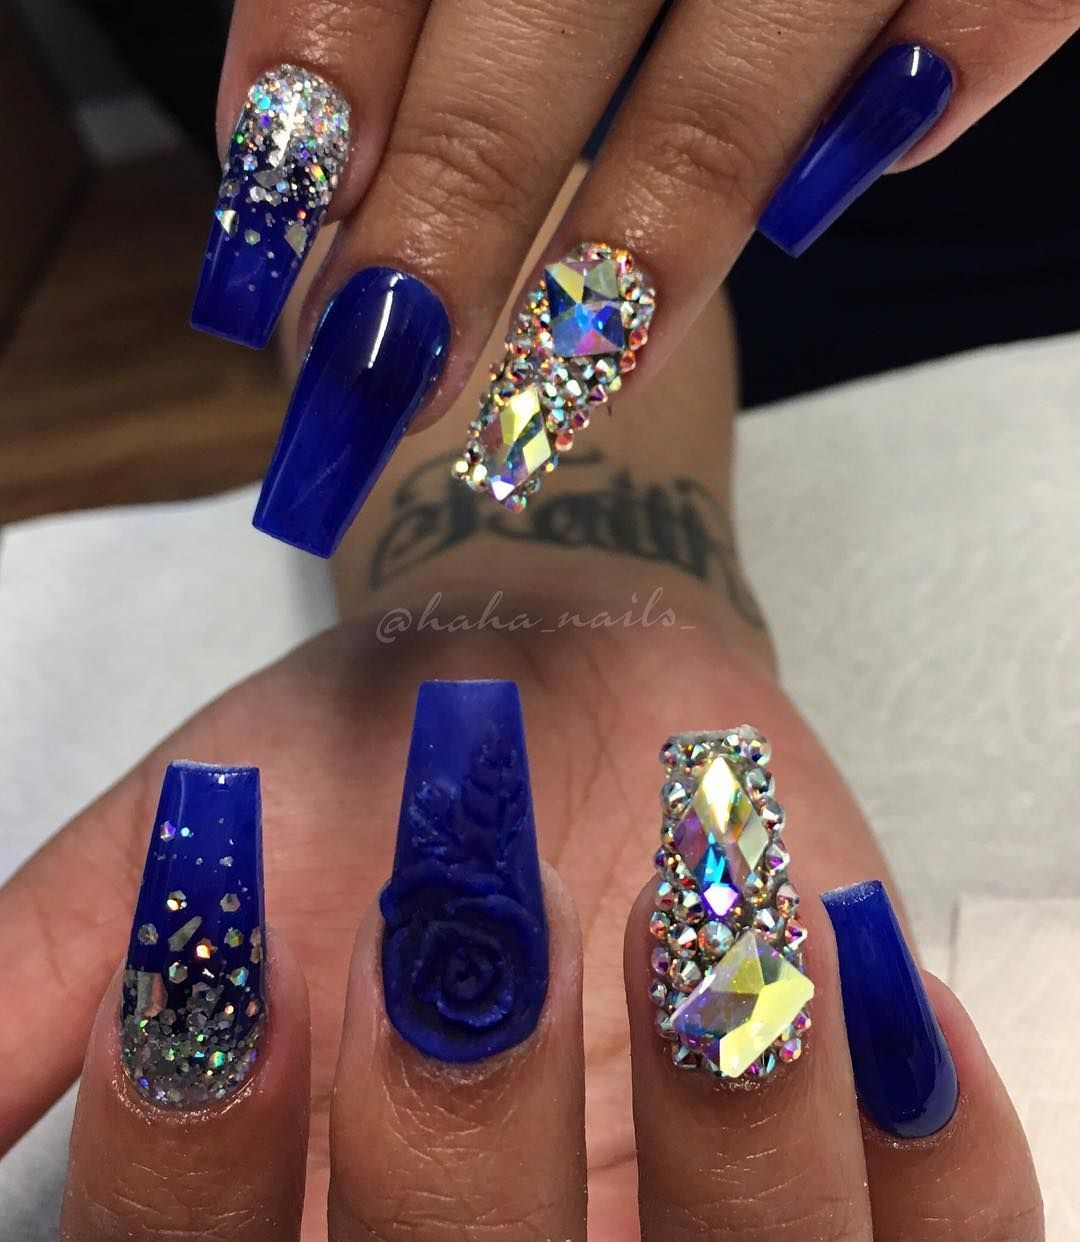 61 acrylic nails designs for summer 2019 style easily - HD 1024×1178